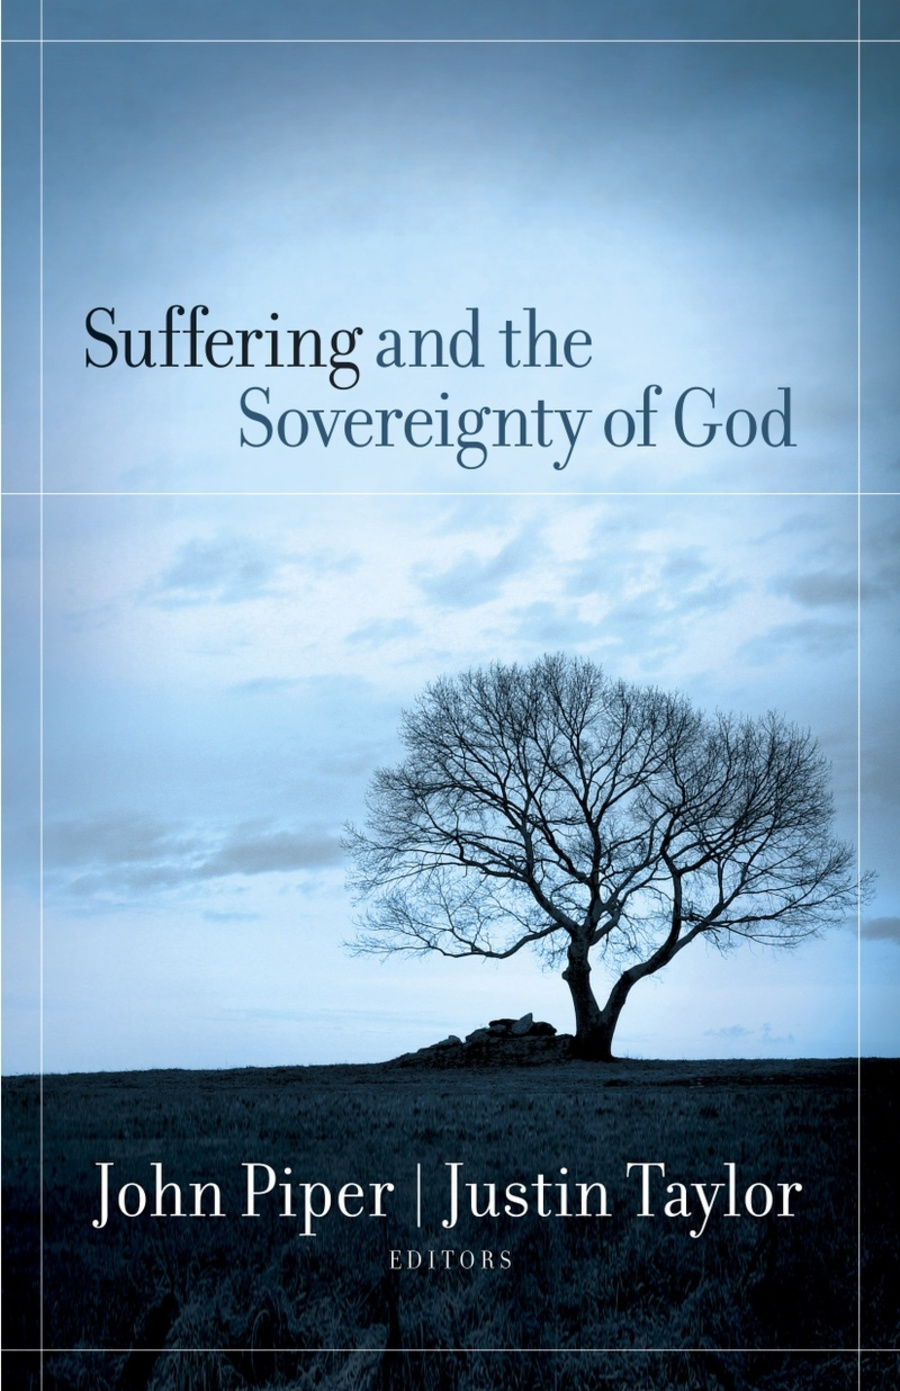 large_suffering-and-the-sovereignty-of-god.jpg